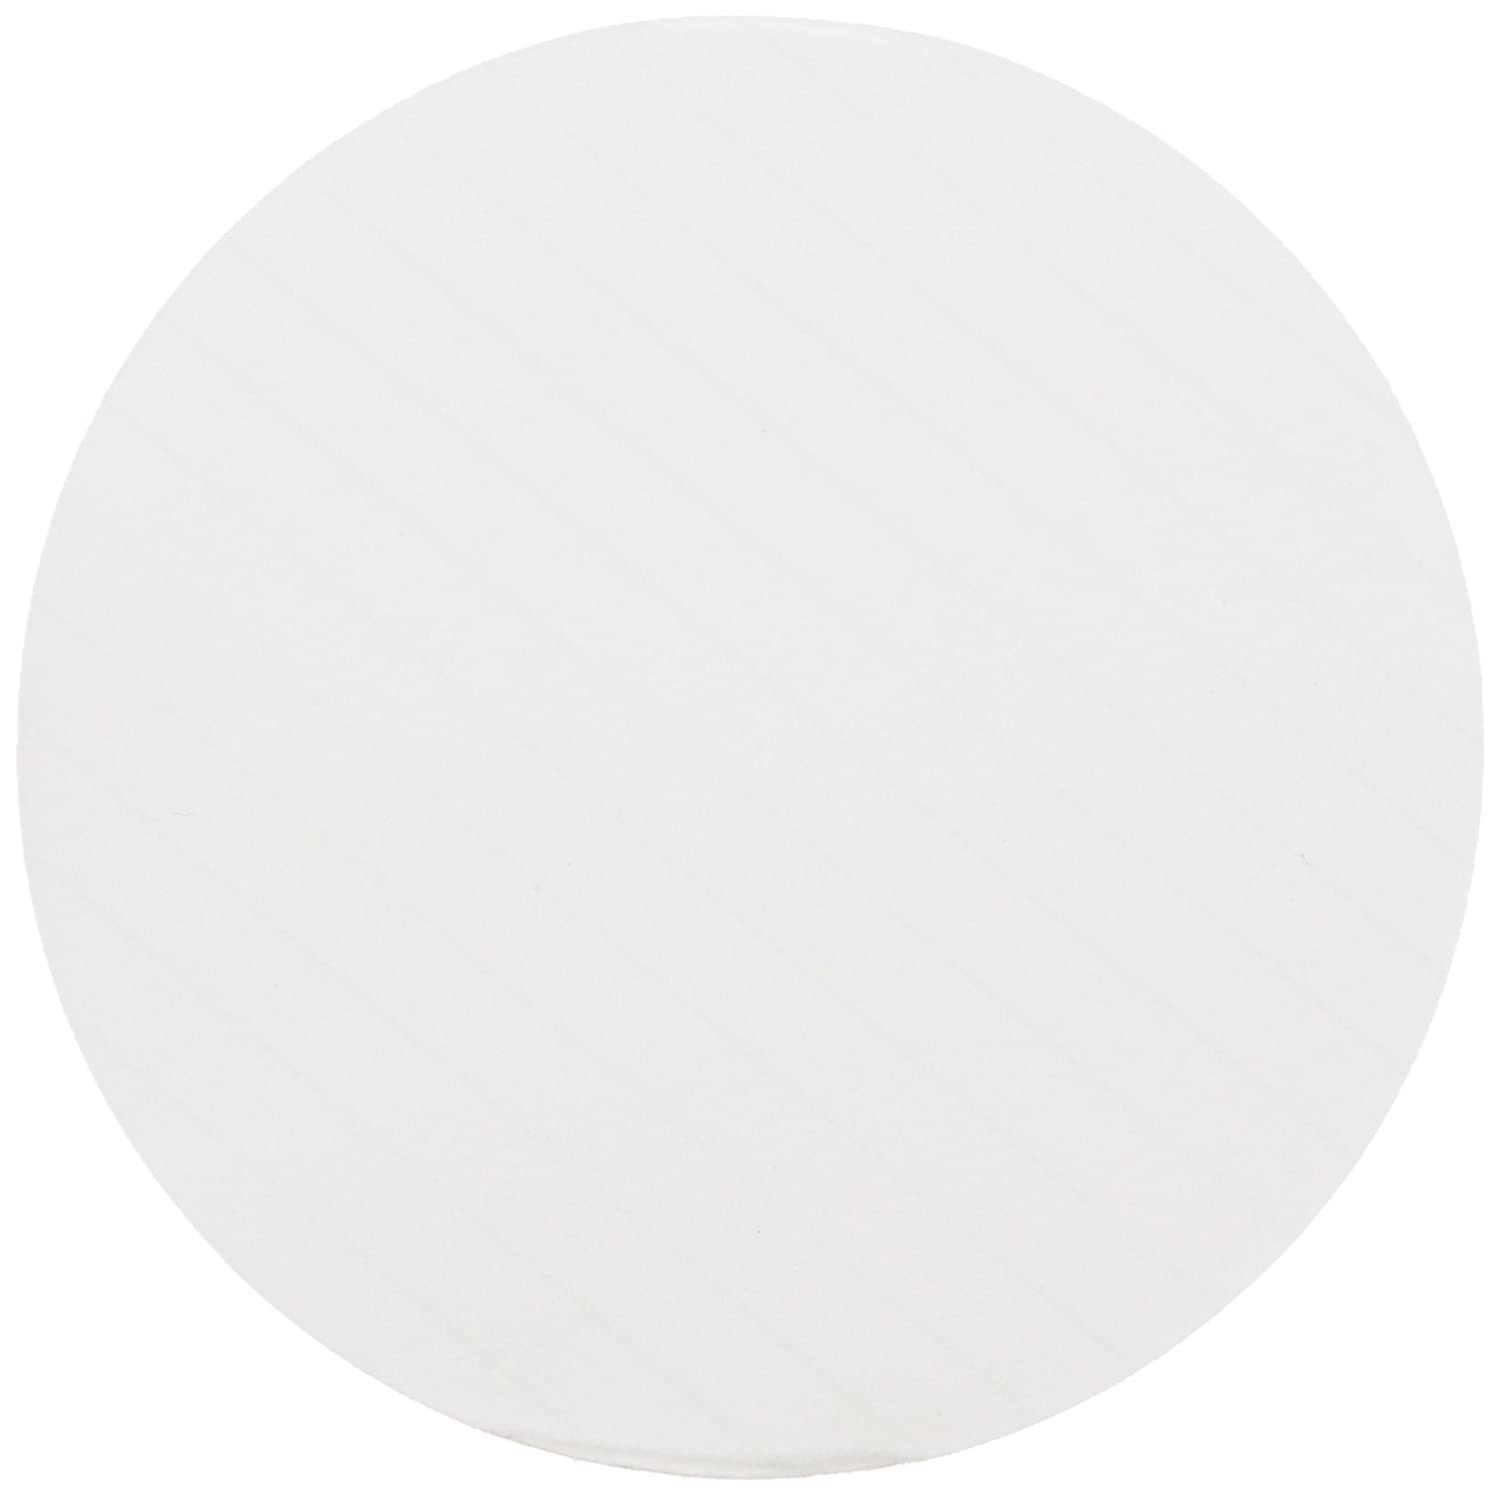 White Pack of 100 70mm Diameter GE Whatman 10347008 Ruled Qualitative Special-Purpose Filter Paper with Green Lines at 5mm Intervals Grade 8 Circle